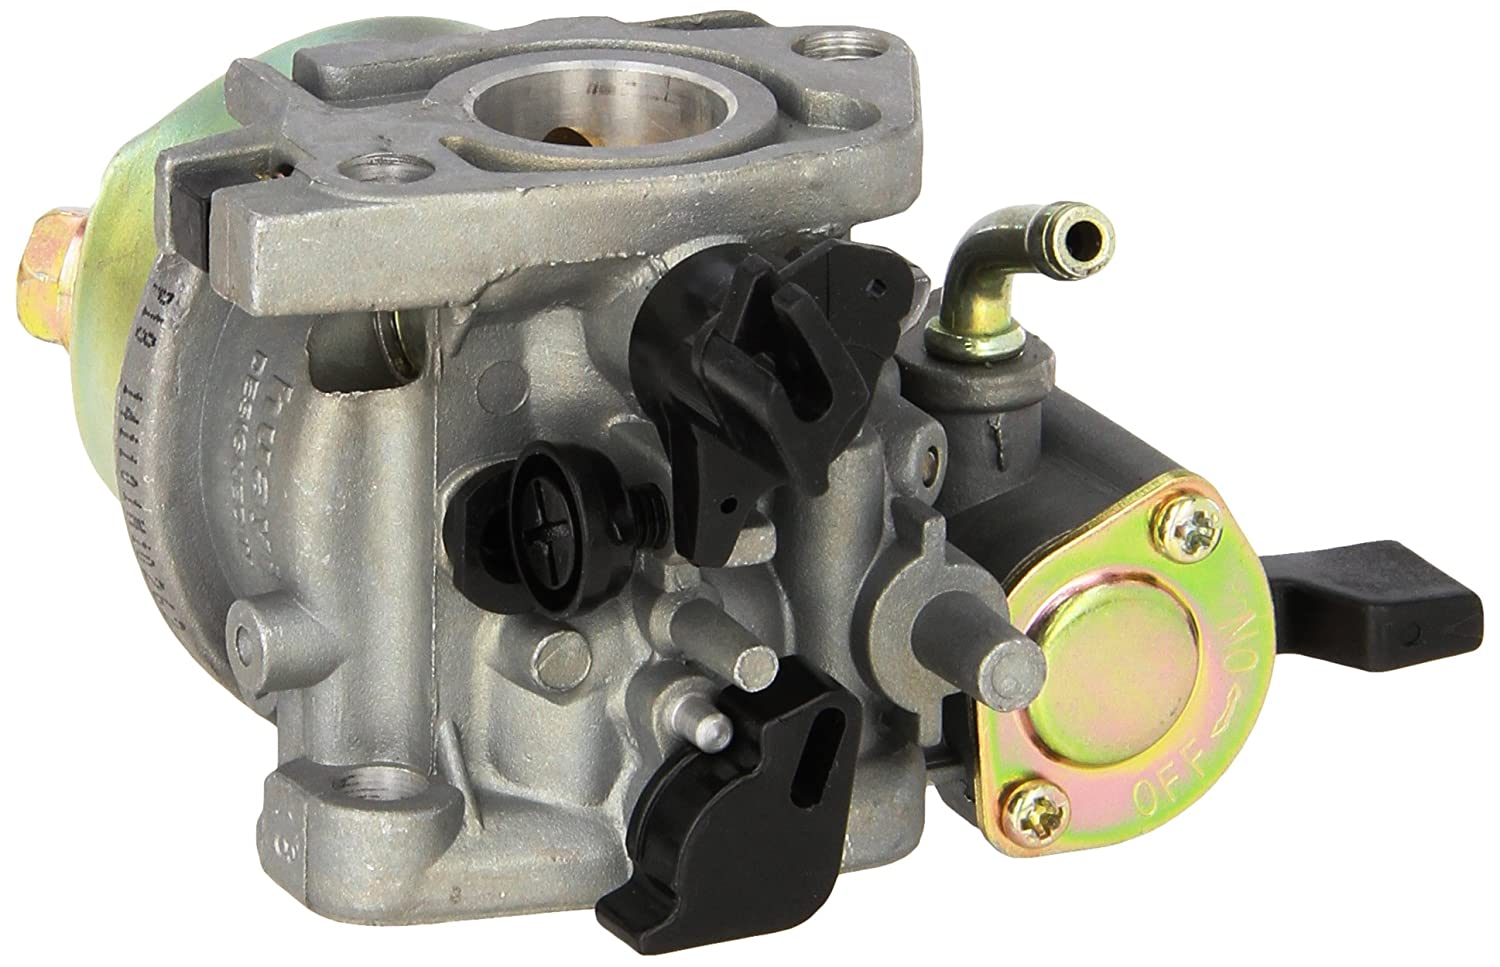 81%2B52LFzROL._SL1500_ amazon com stens 520 722 carburetor replaces honda 16100 zh8 w61  at honlapkeszites.co